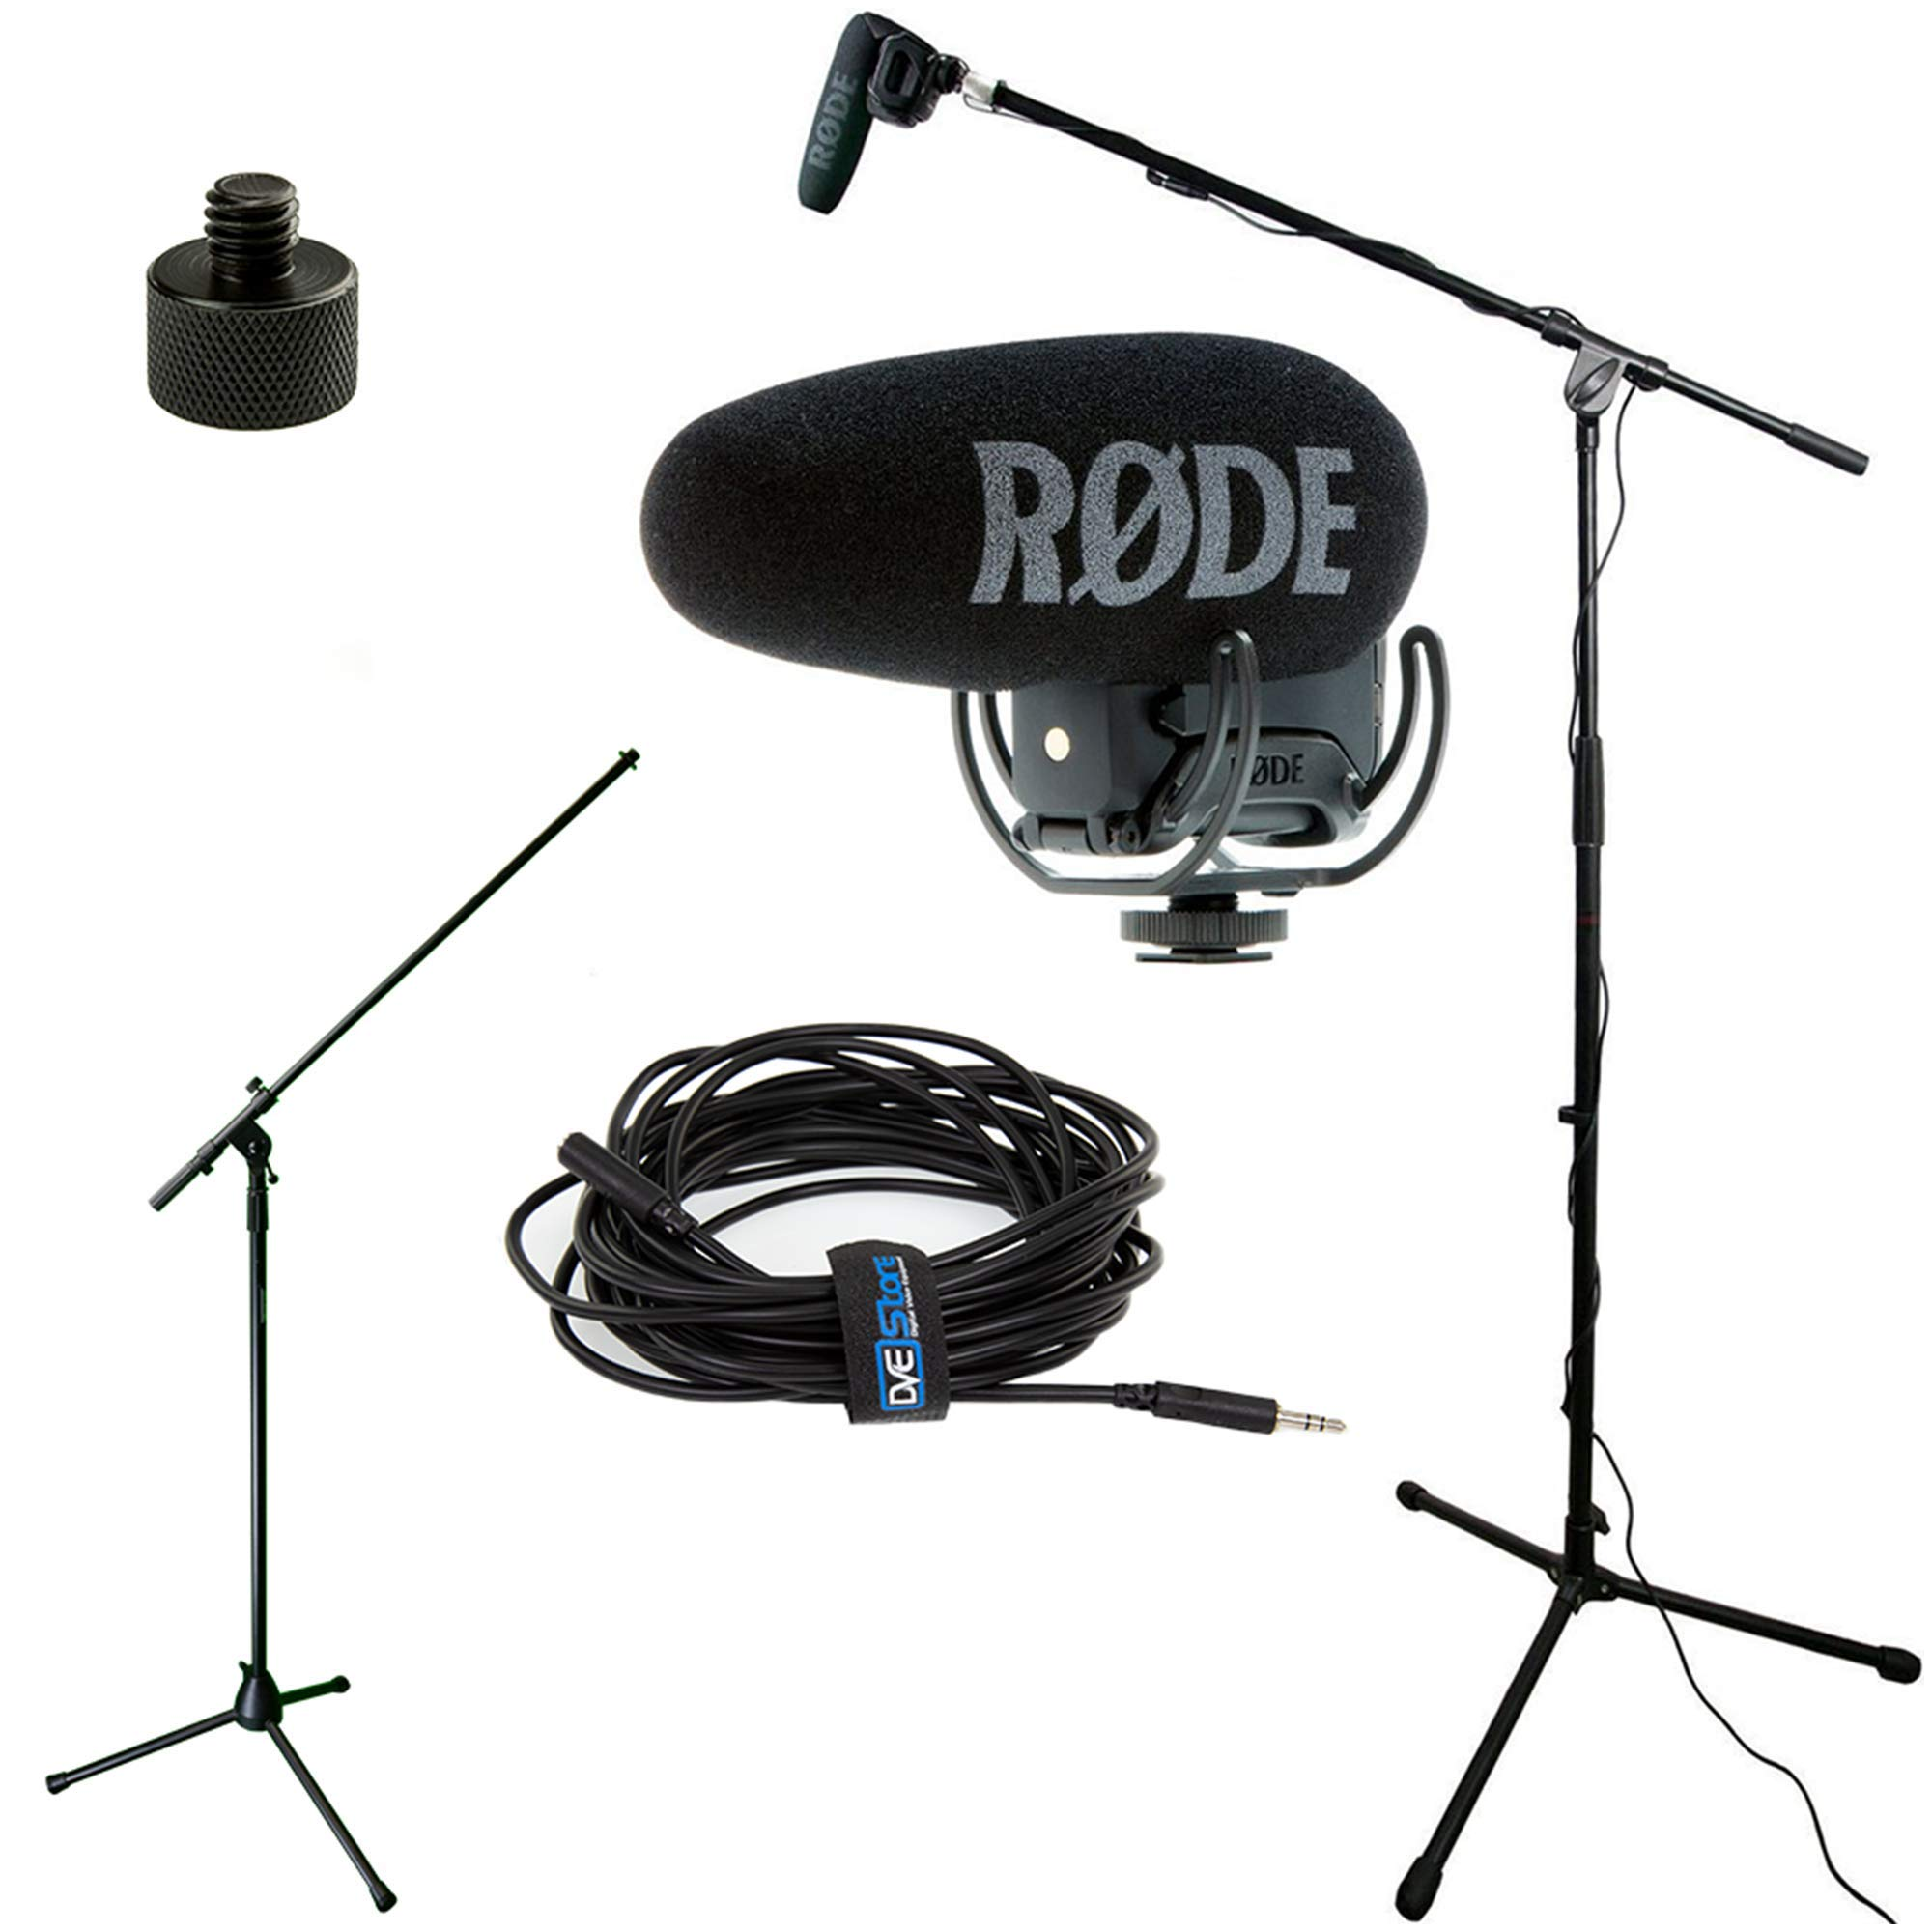 RODE VideoMic Pro+ w/ Rycote Studio Boom Kit - VMP+, Boom Stand, Adapter, and 25' Cable by DVEStore